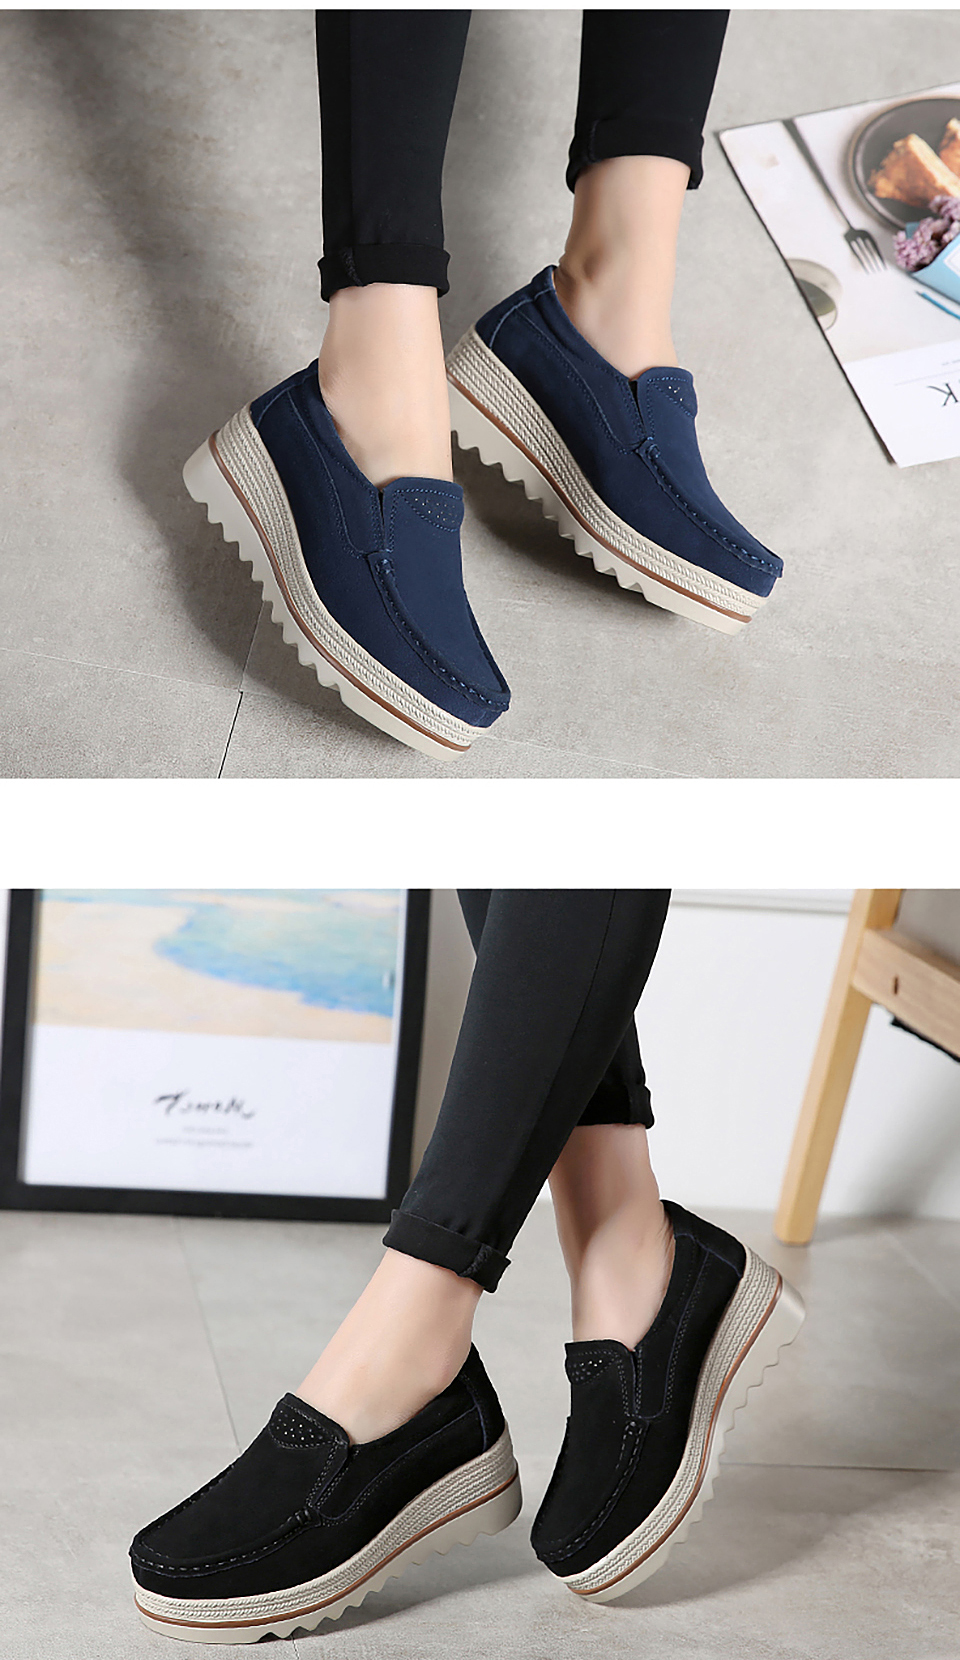 HTB1tydGOjDpK1RjSZFrq6y78VXab 2019 Spring Women Flats Shoes Platform Sneakers Slip On Flats Leather Suede Ladies Loafers Moccasins Casual Shoes Women Creepers